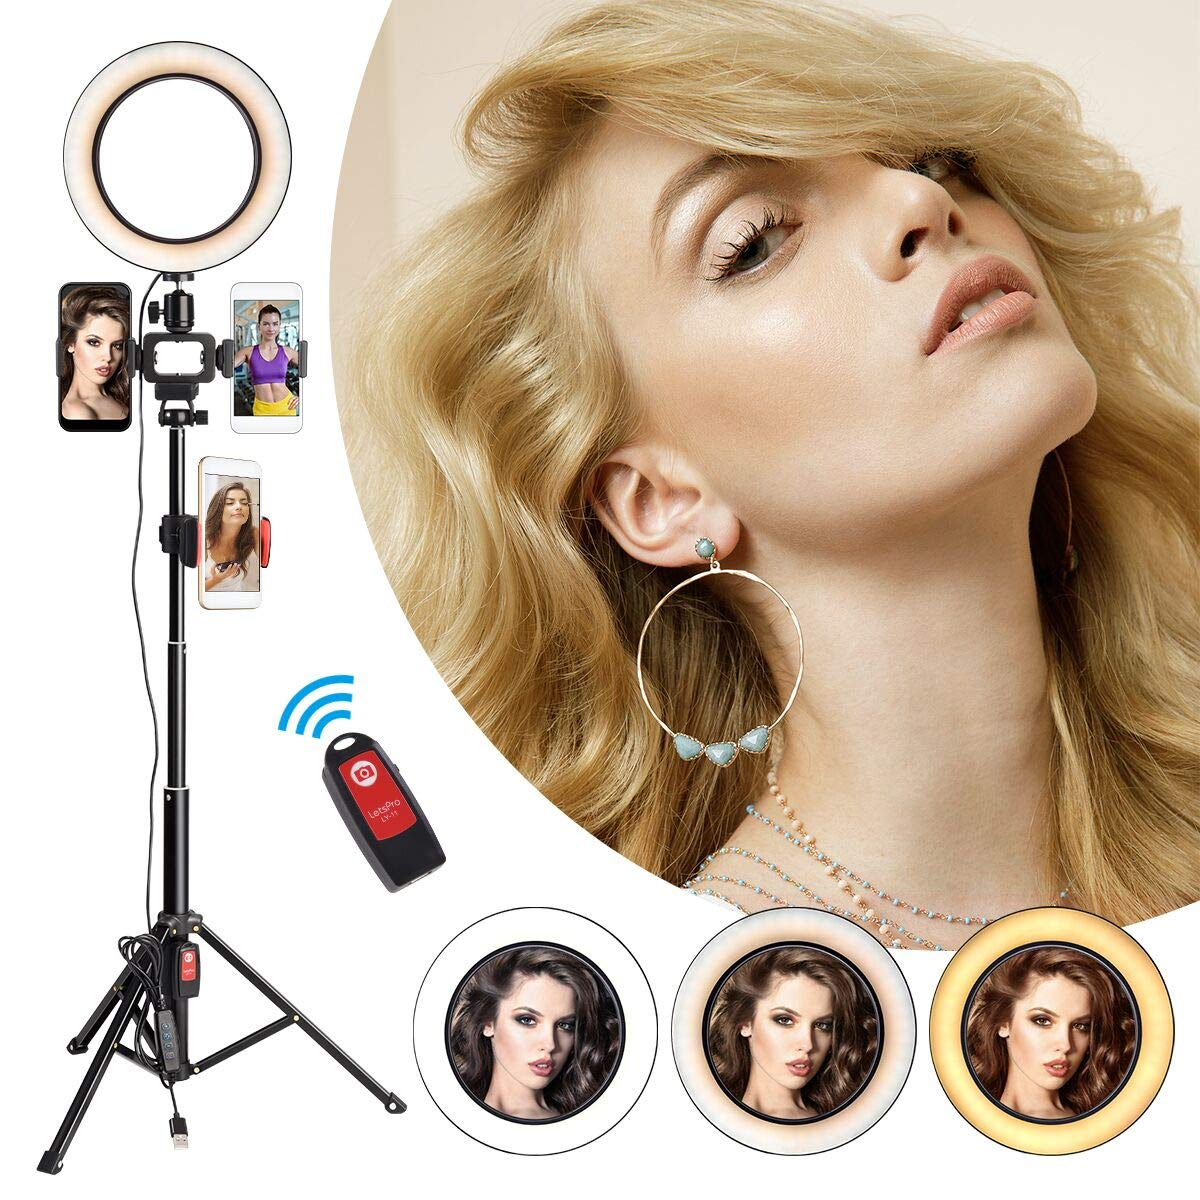 Selfie Ring Light with Stand, 8'' Ring Lighting Kit with Tripod & 3 Phone Holders Remote Control for Record YouTube Video Living Streaming Desktop Camera Makeup Selfie Photography Adjustable to 52 Inch by JIAN YA NA